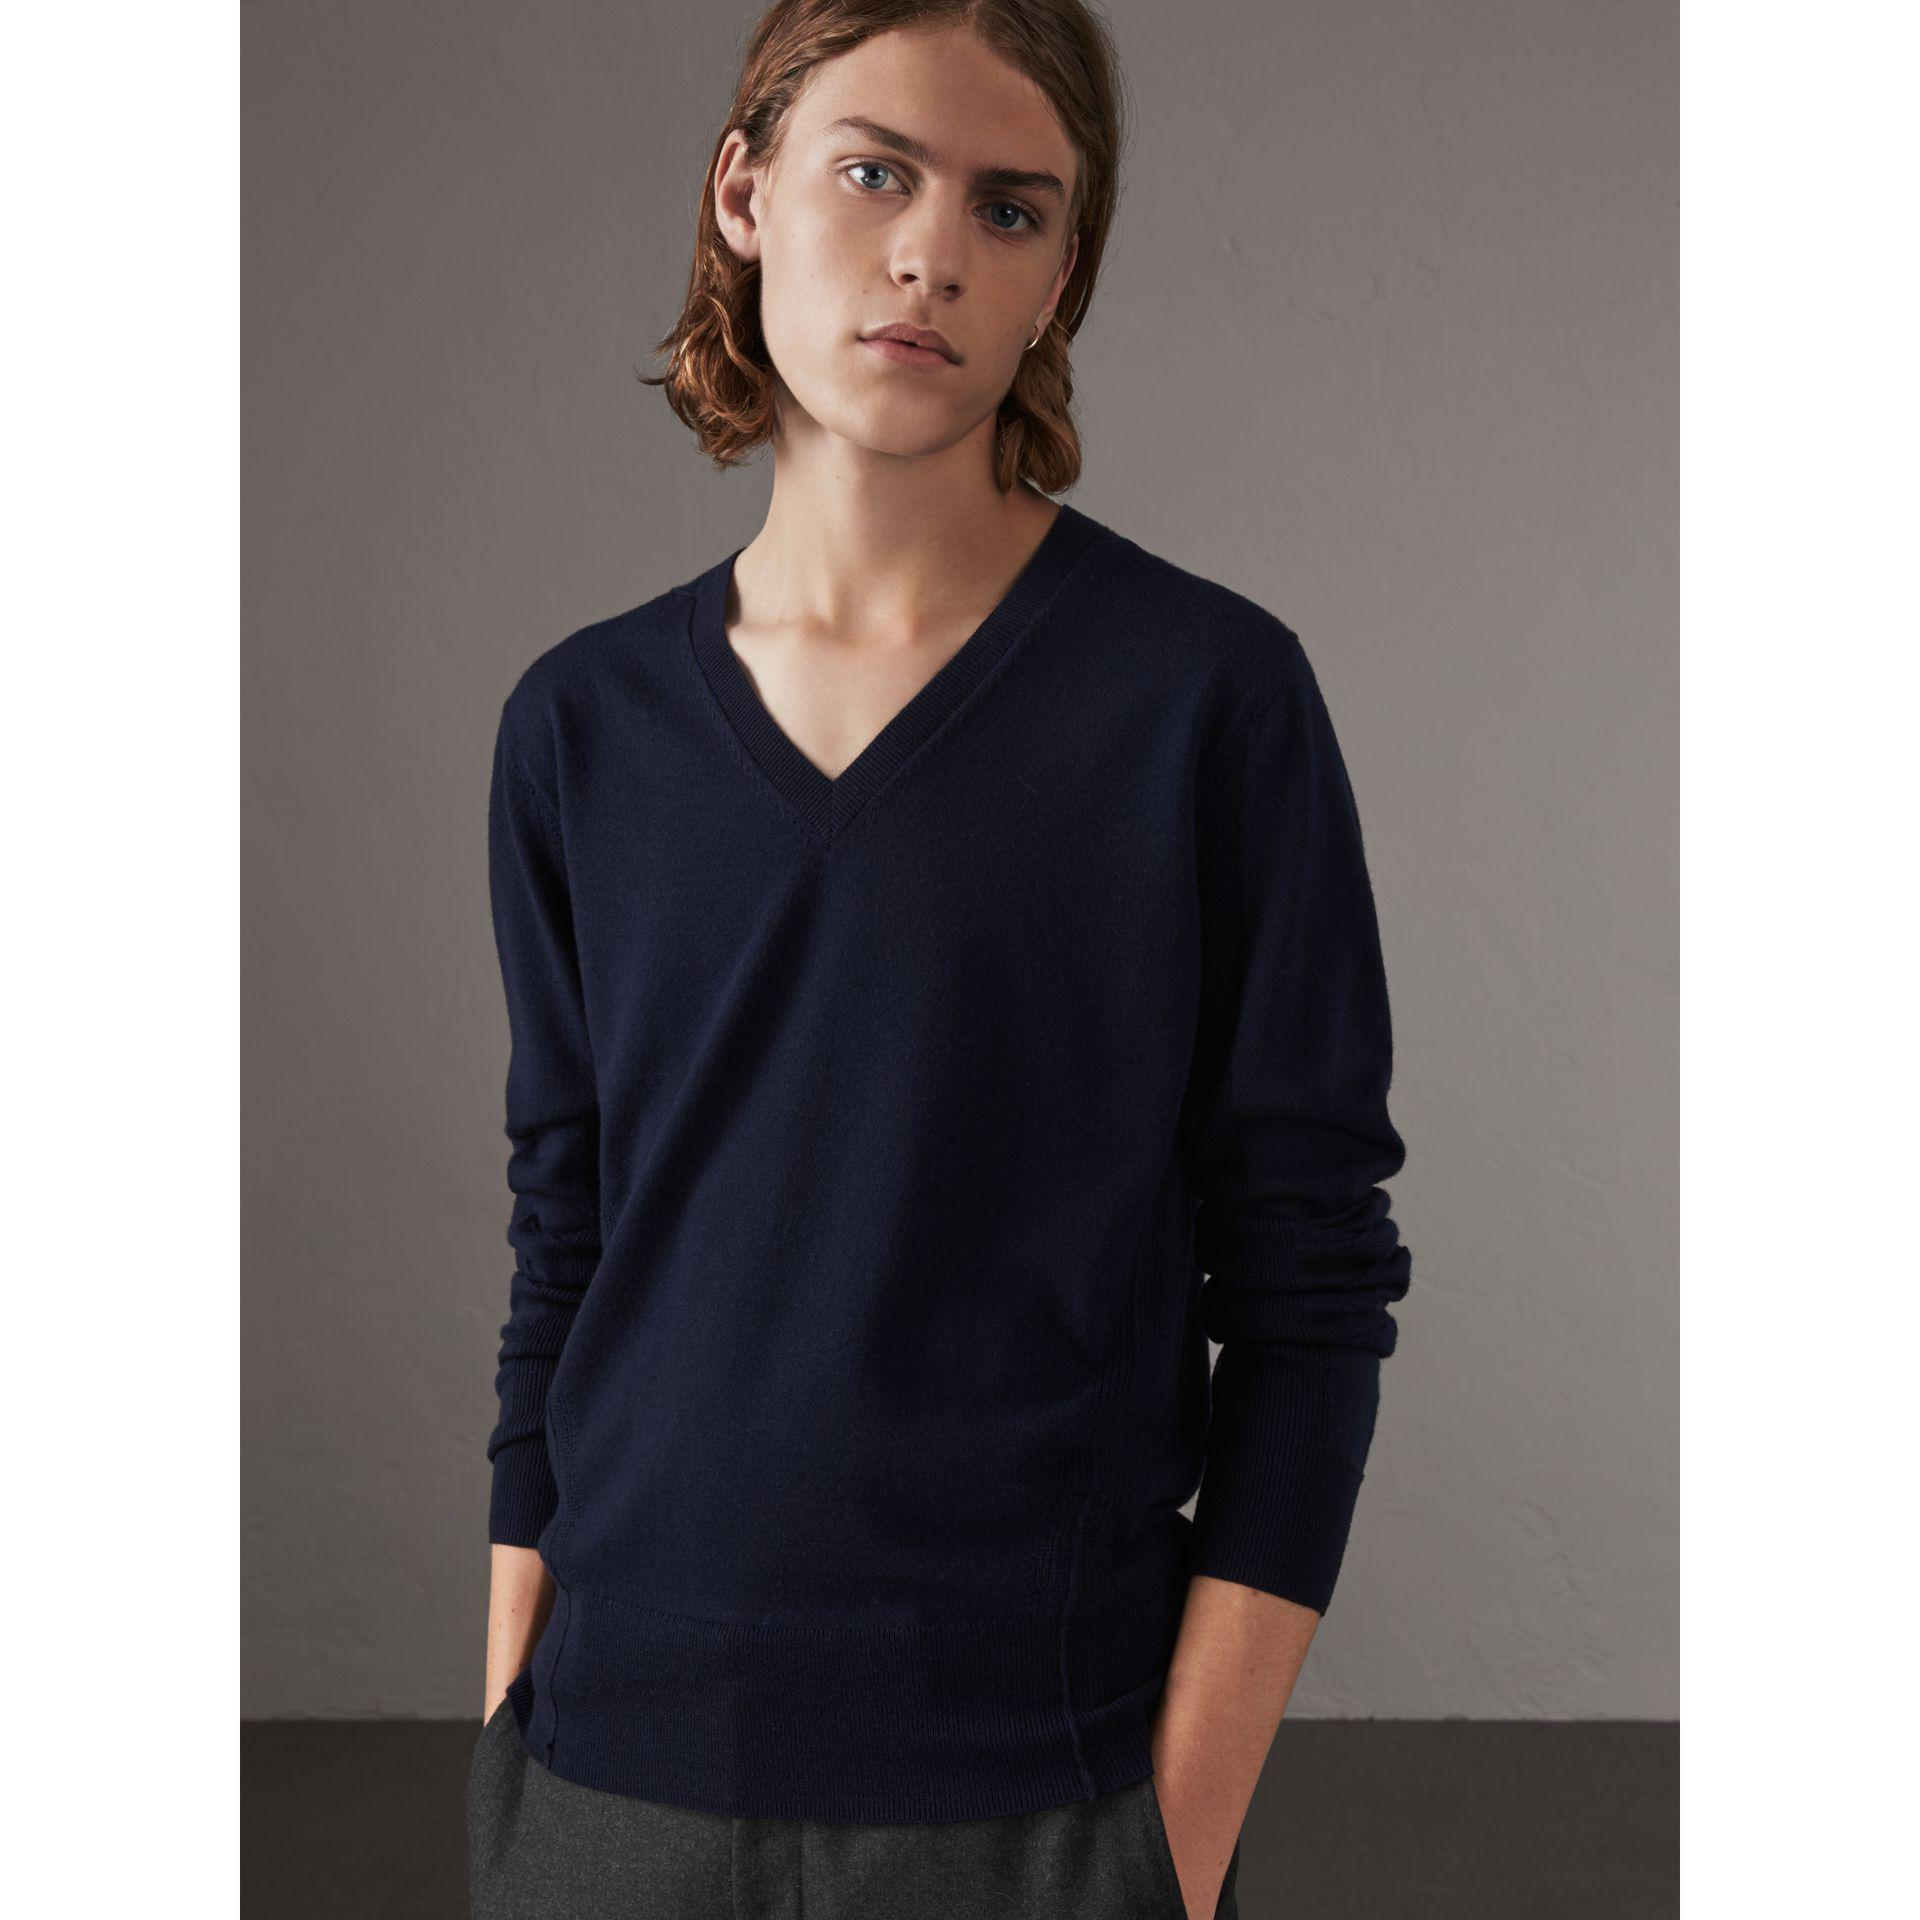 Get To Buy Cheap Price Outlet Shop Offer Check Detail Merino Wool Crew Neck Sweater - Grey Burberry 100% Authentic For Sale 2018 Newest Sale Real H2DzAq